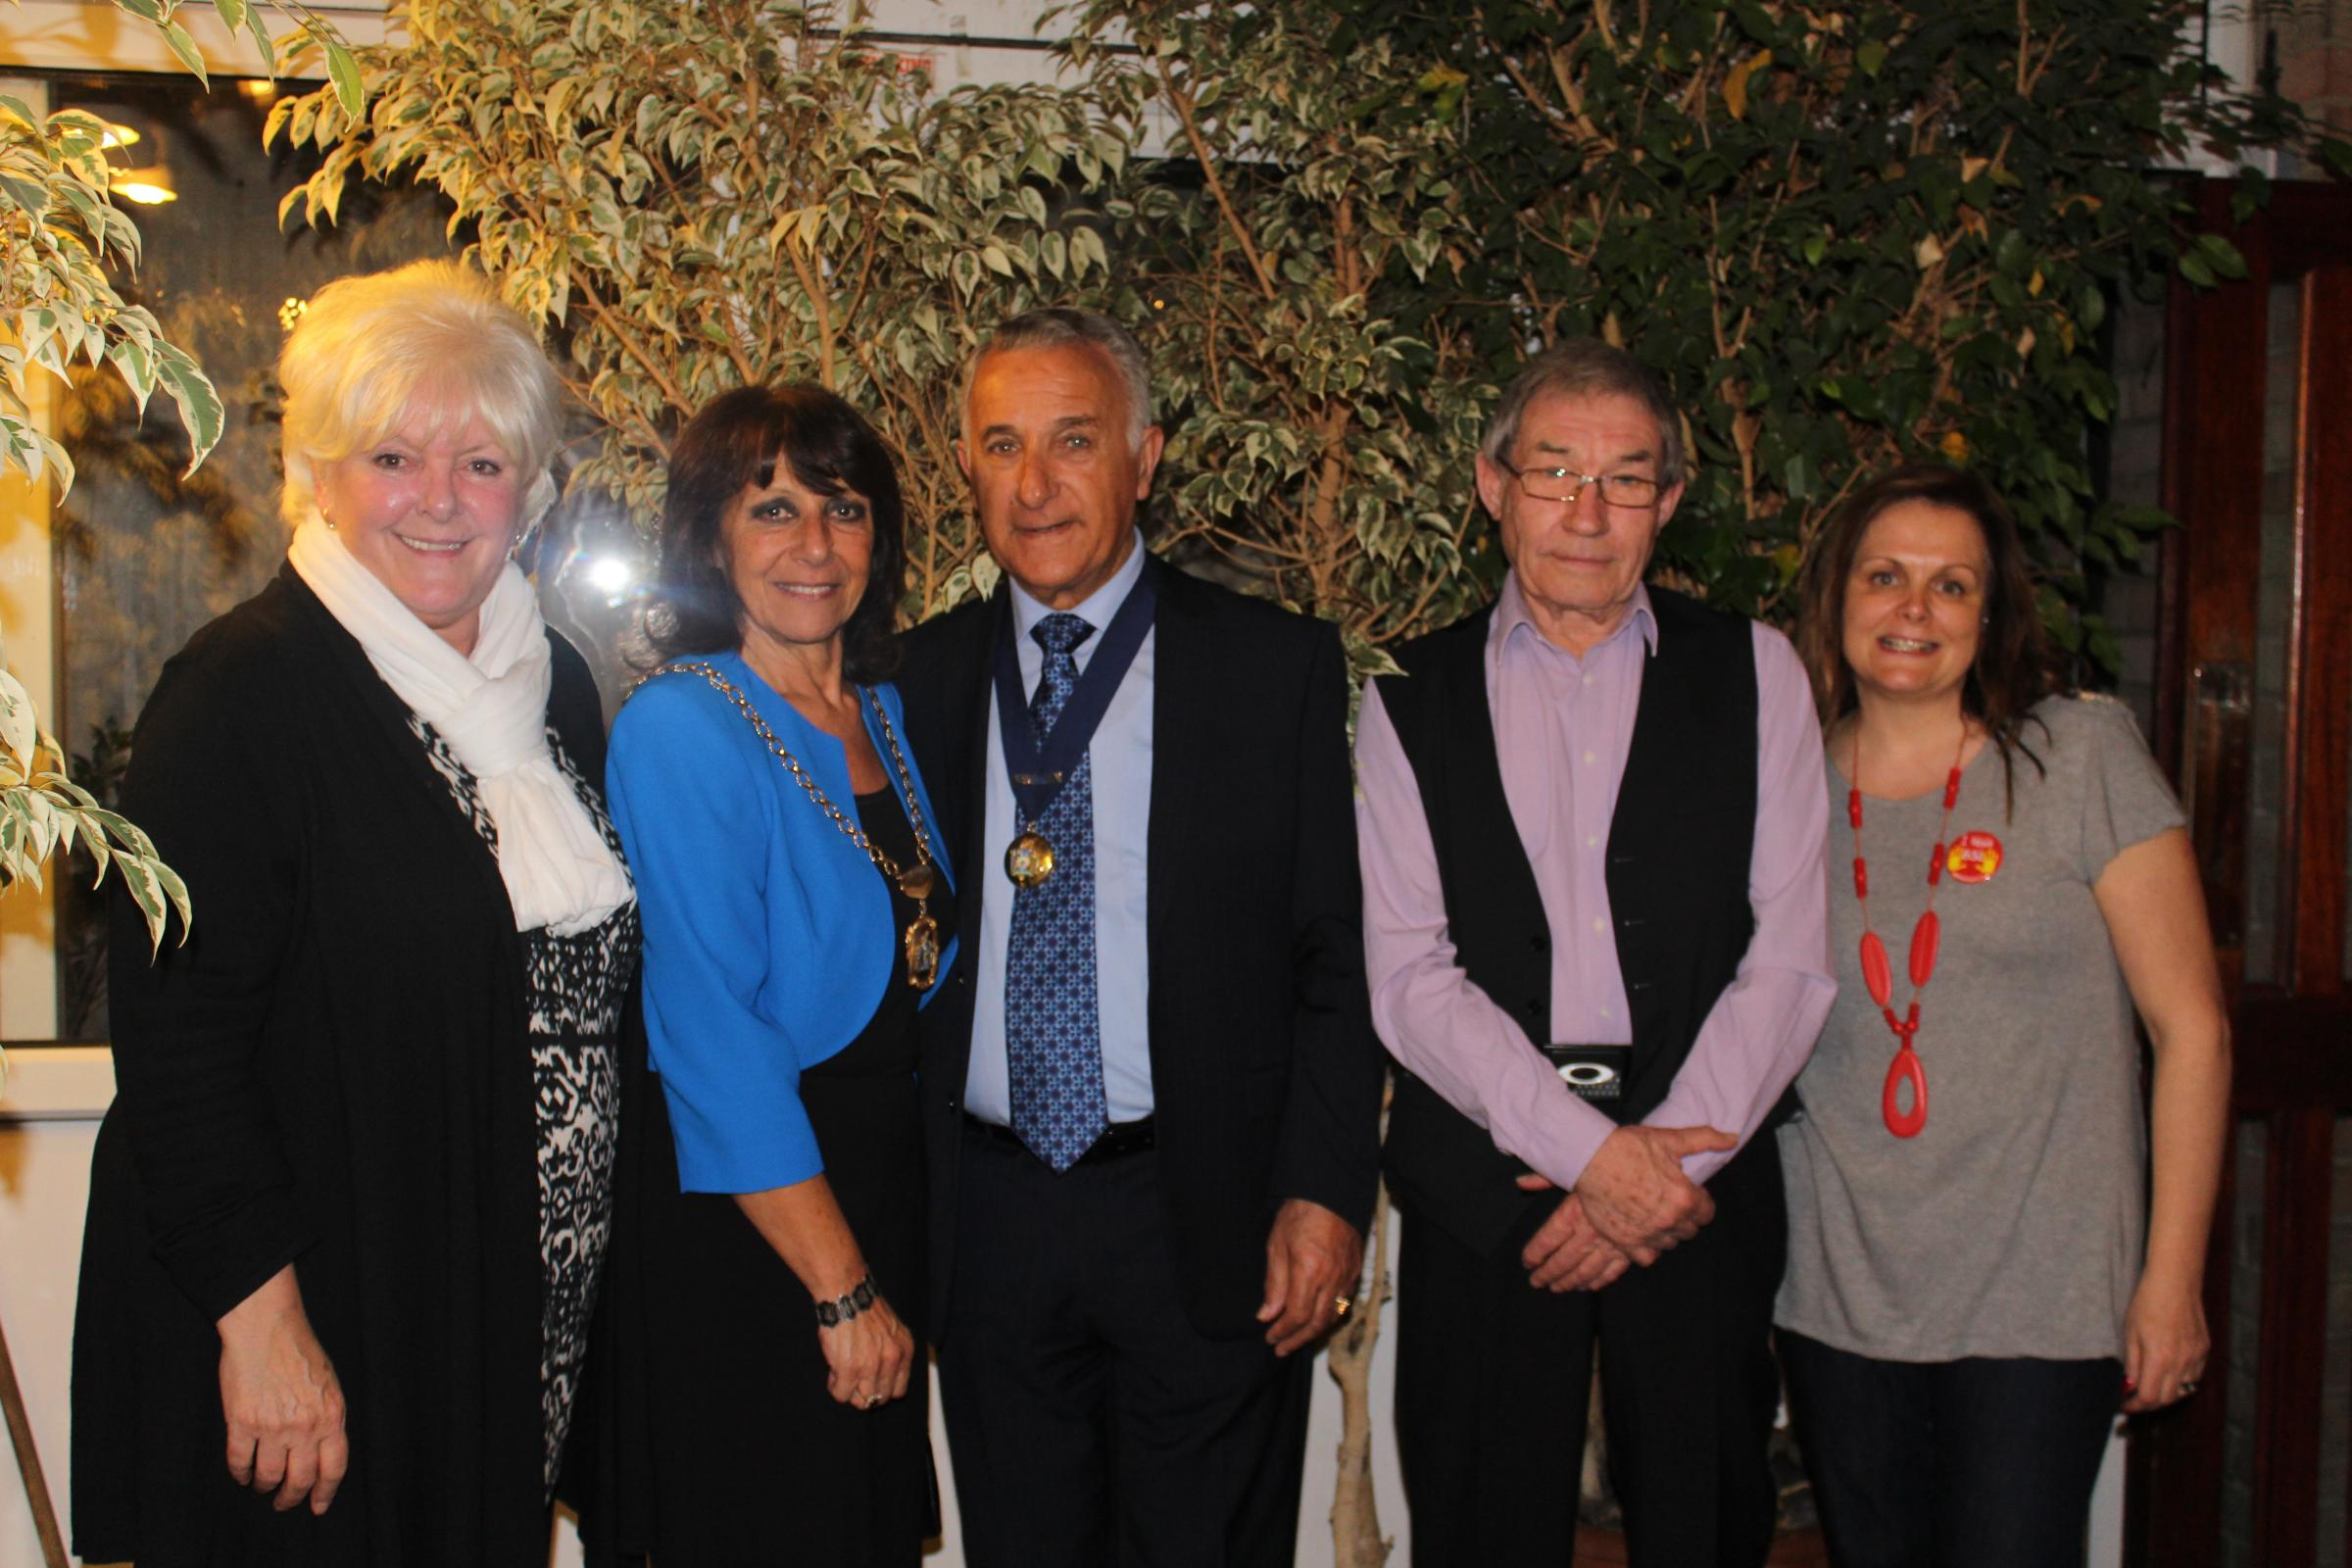 Forest Deaf Club Secretary Jackie Benson, Deputy Mayor Cllr Tania Solomon and her husband David, Uplands Social Club Secretary Terry Pearce, and Forest Deaf Club Chair Kirsti Clark